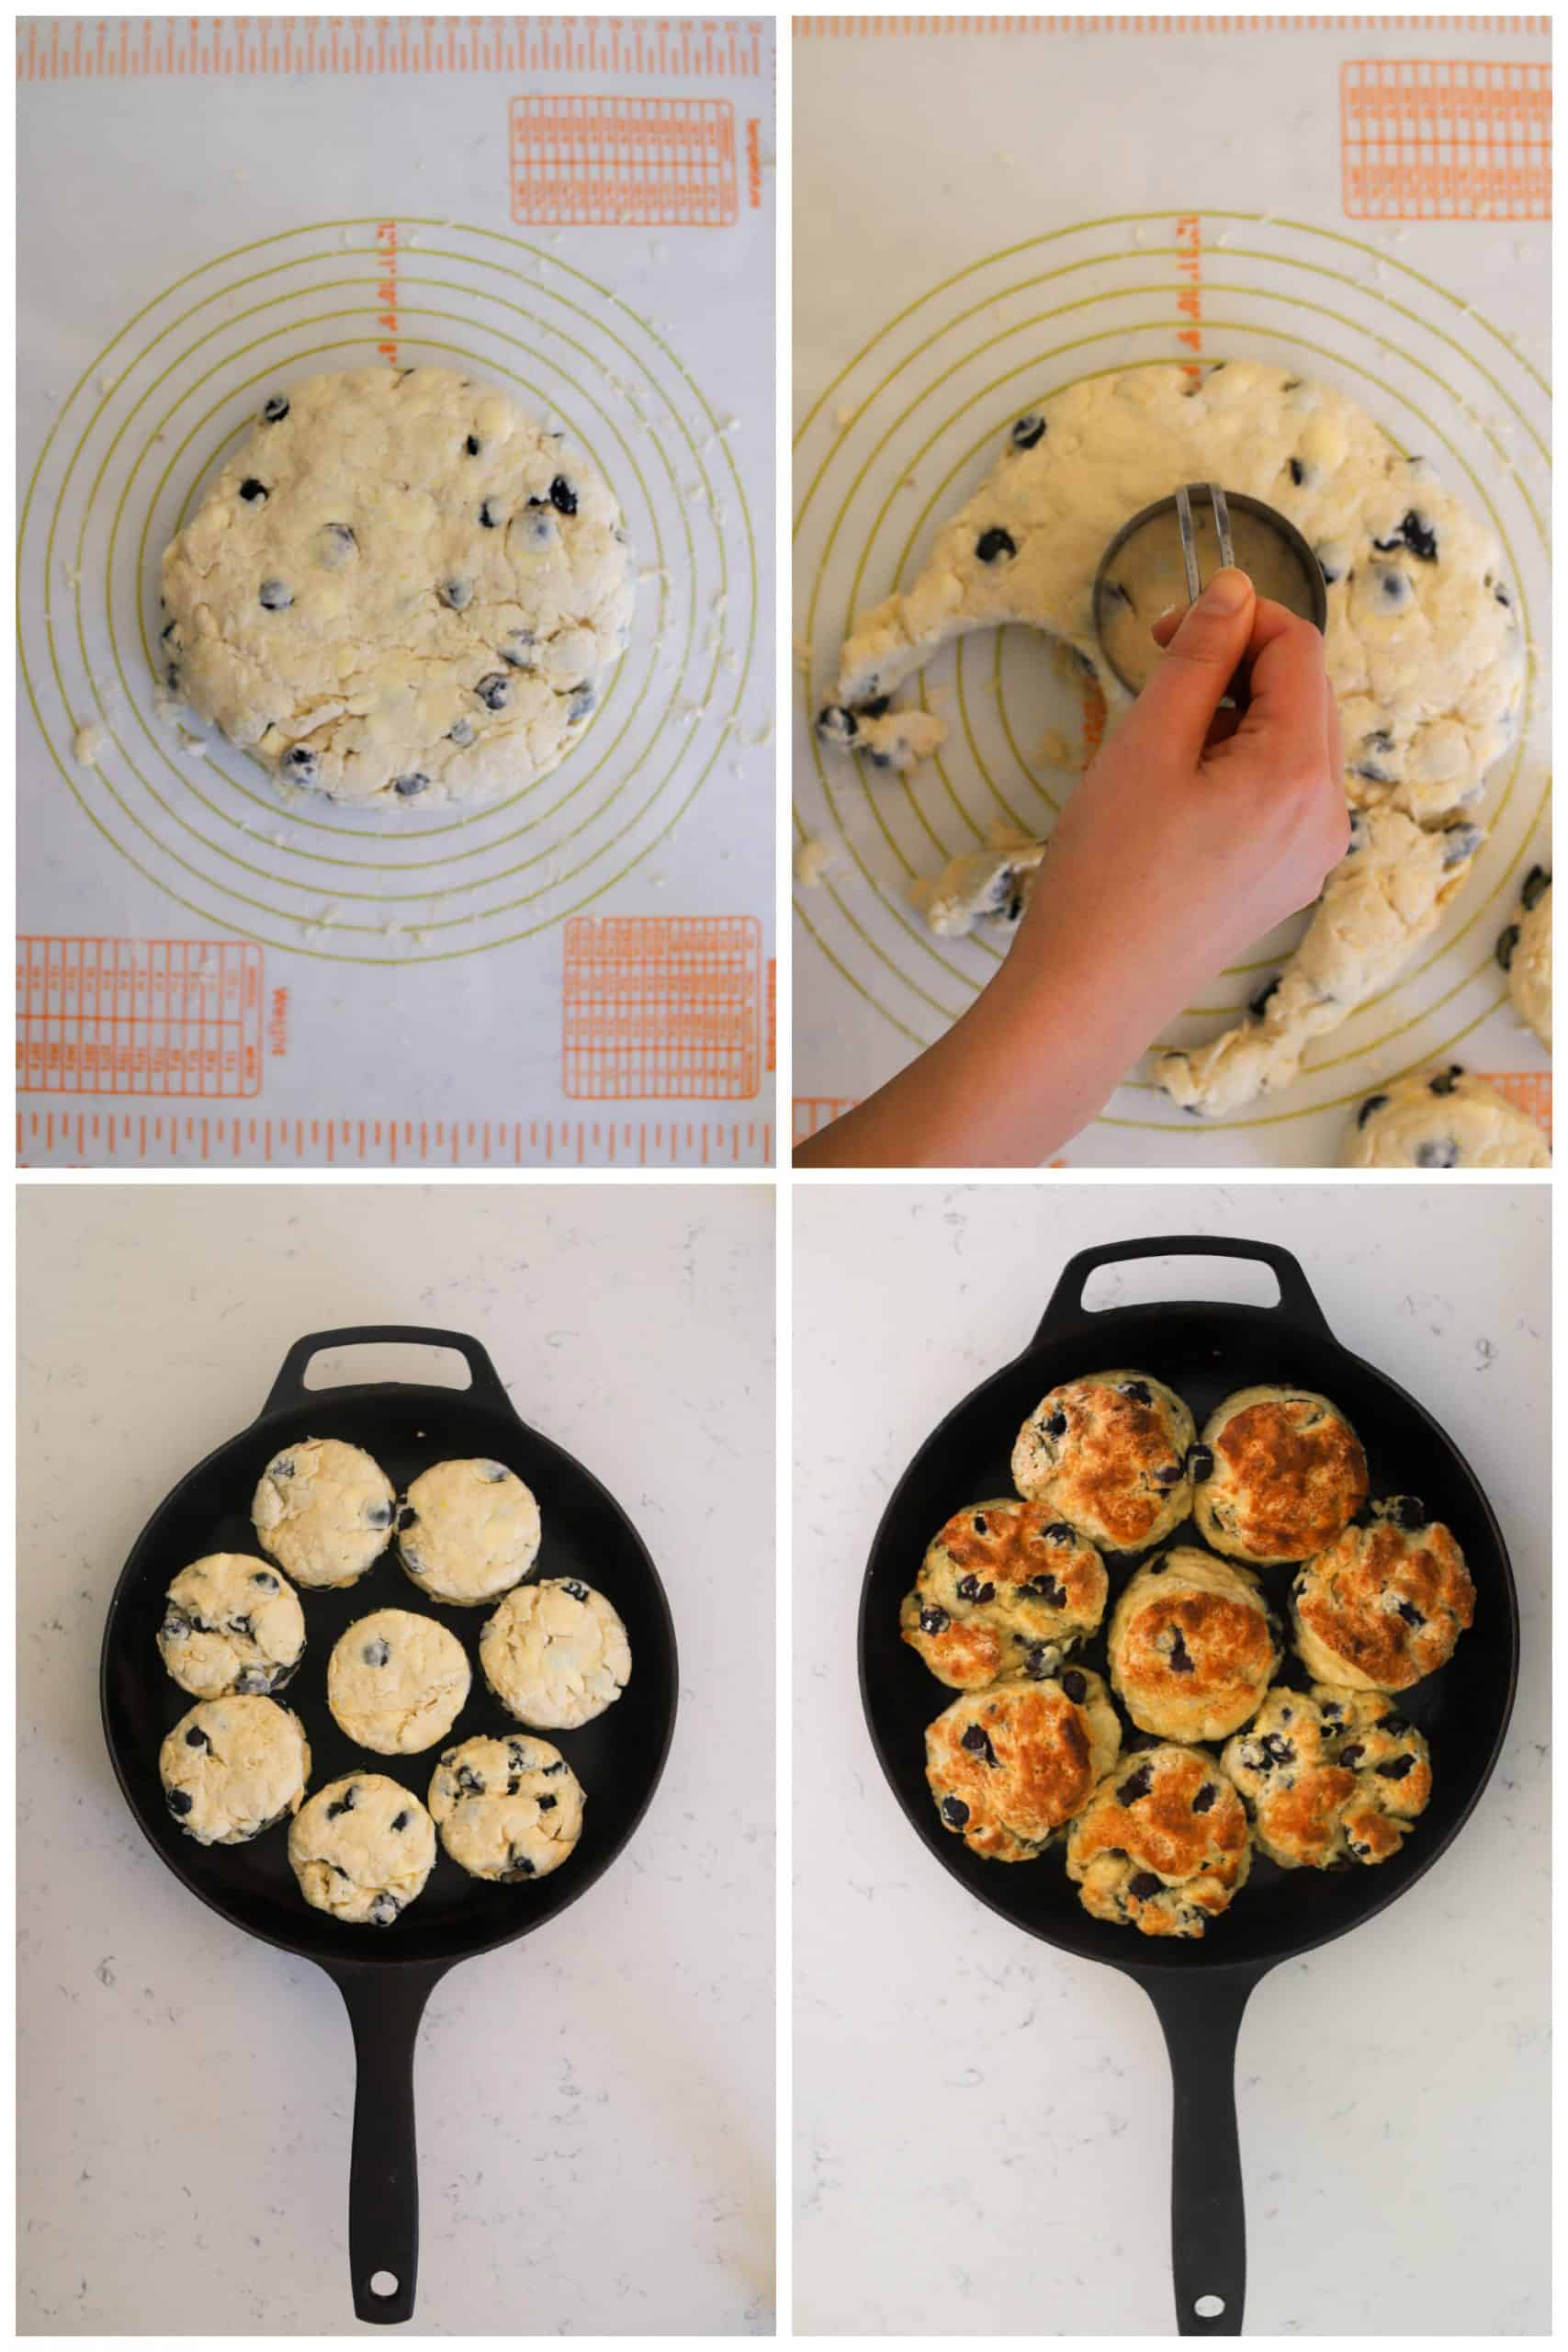 blueberry biscuit step by step